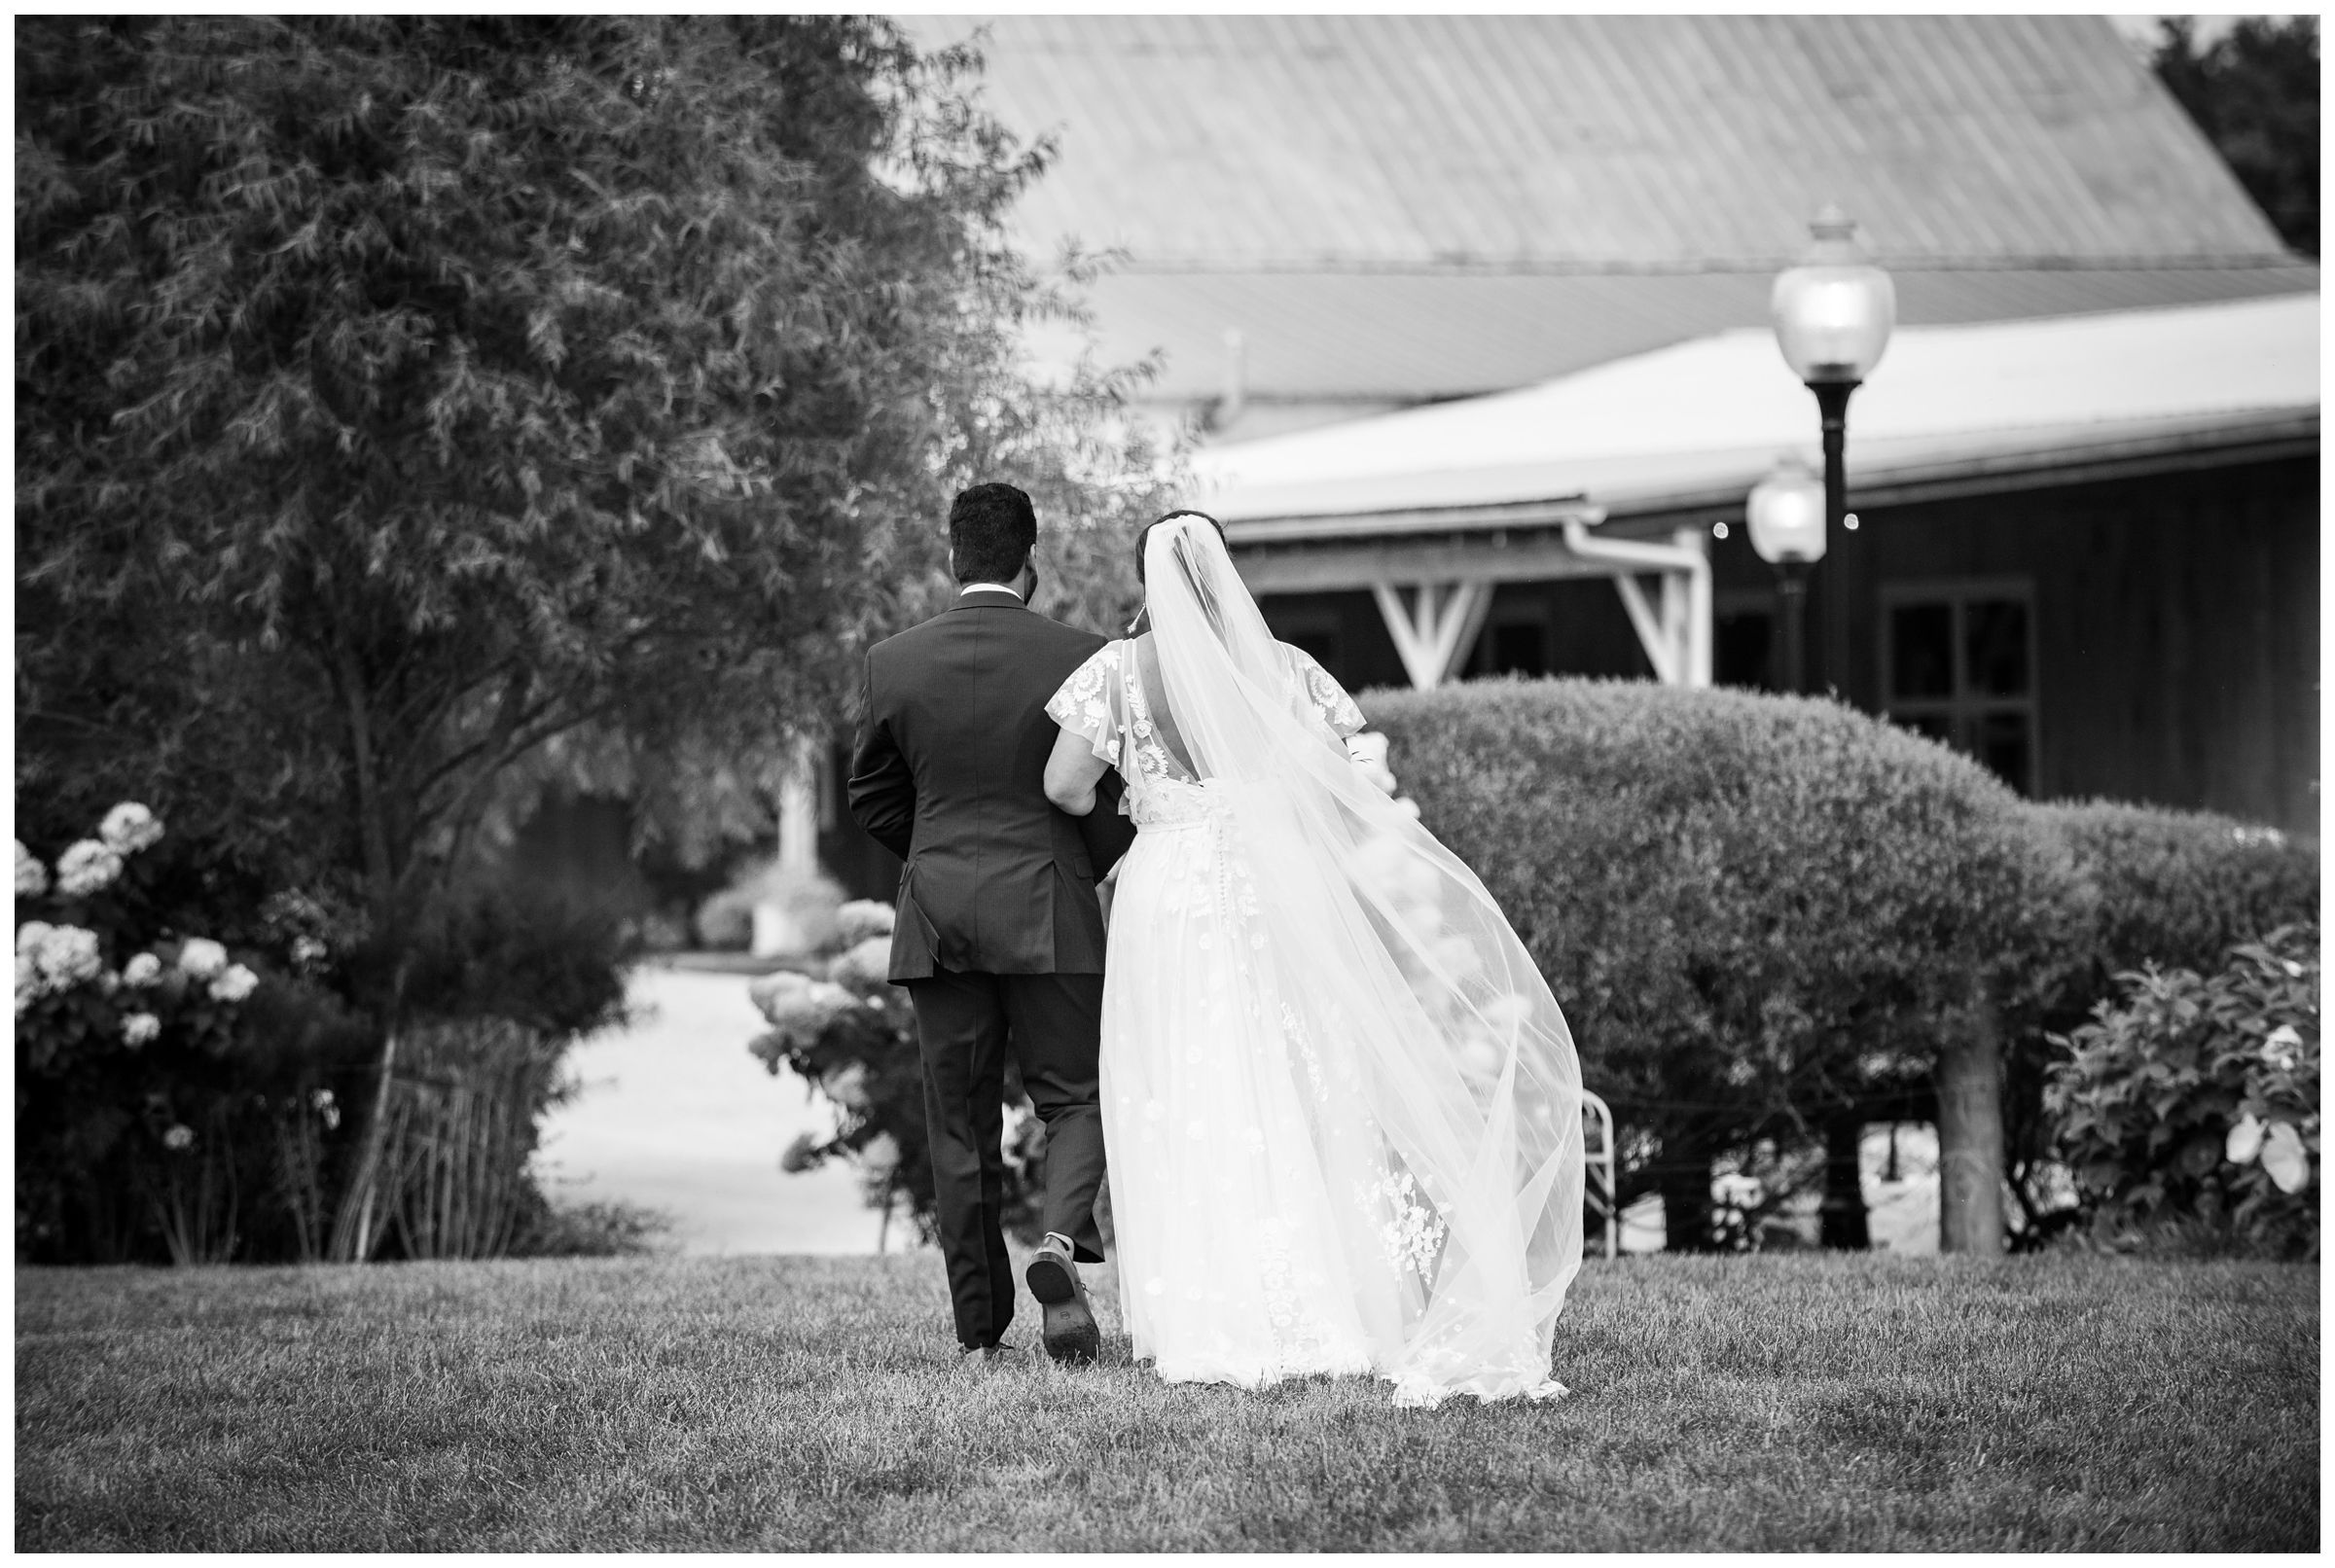 Bride and groom after wedding ceremony at Jorgensen Farms Historic Barn in Columbus